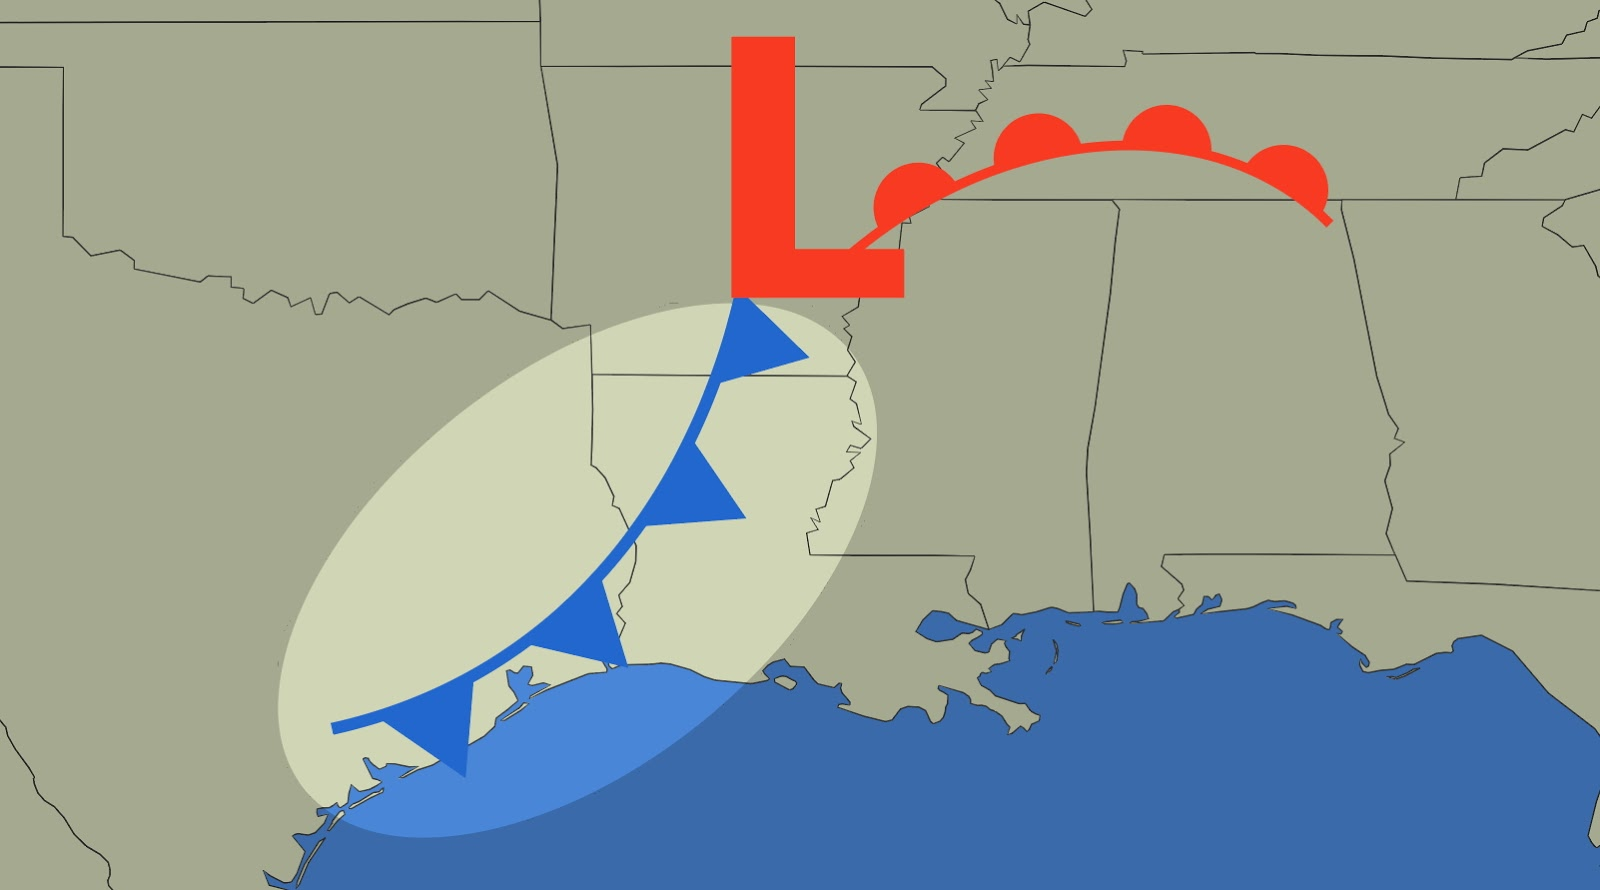 The triangles indicate the direction of the cold front